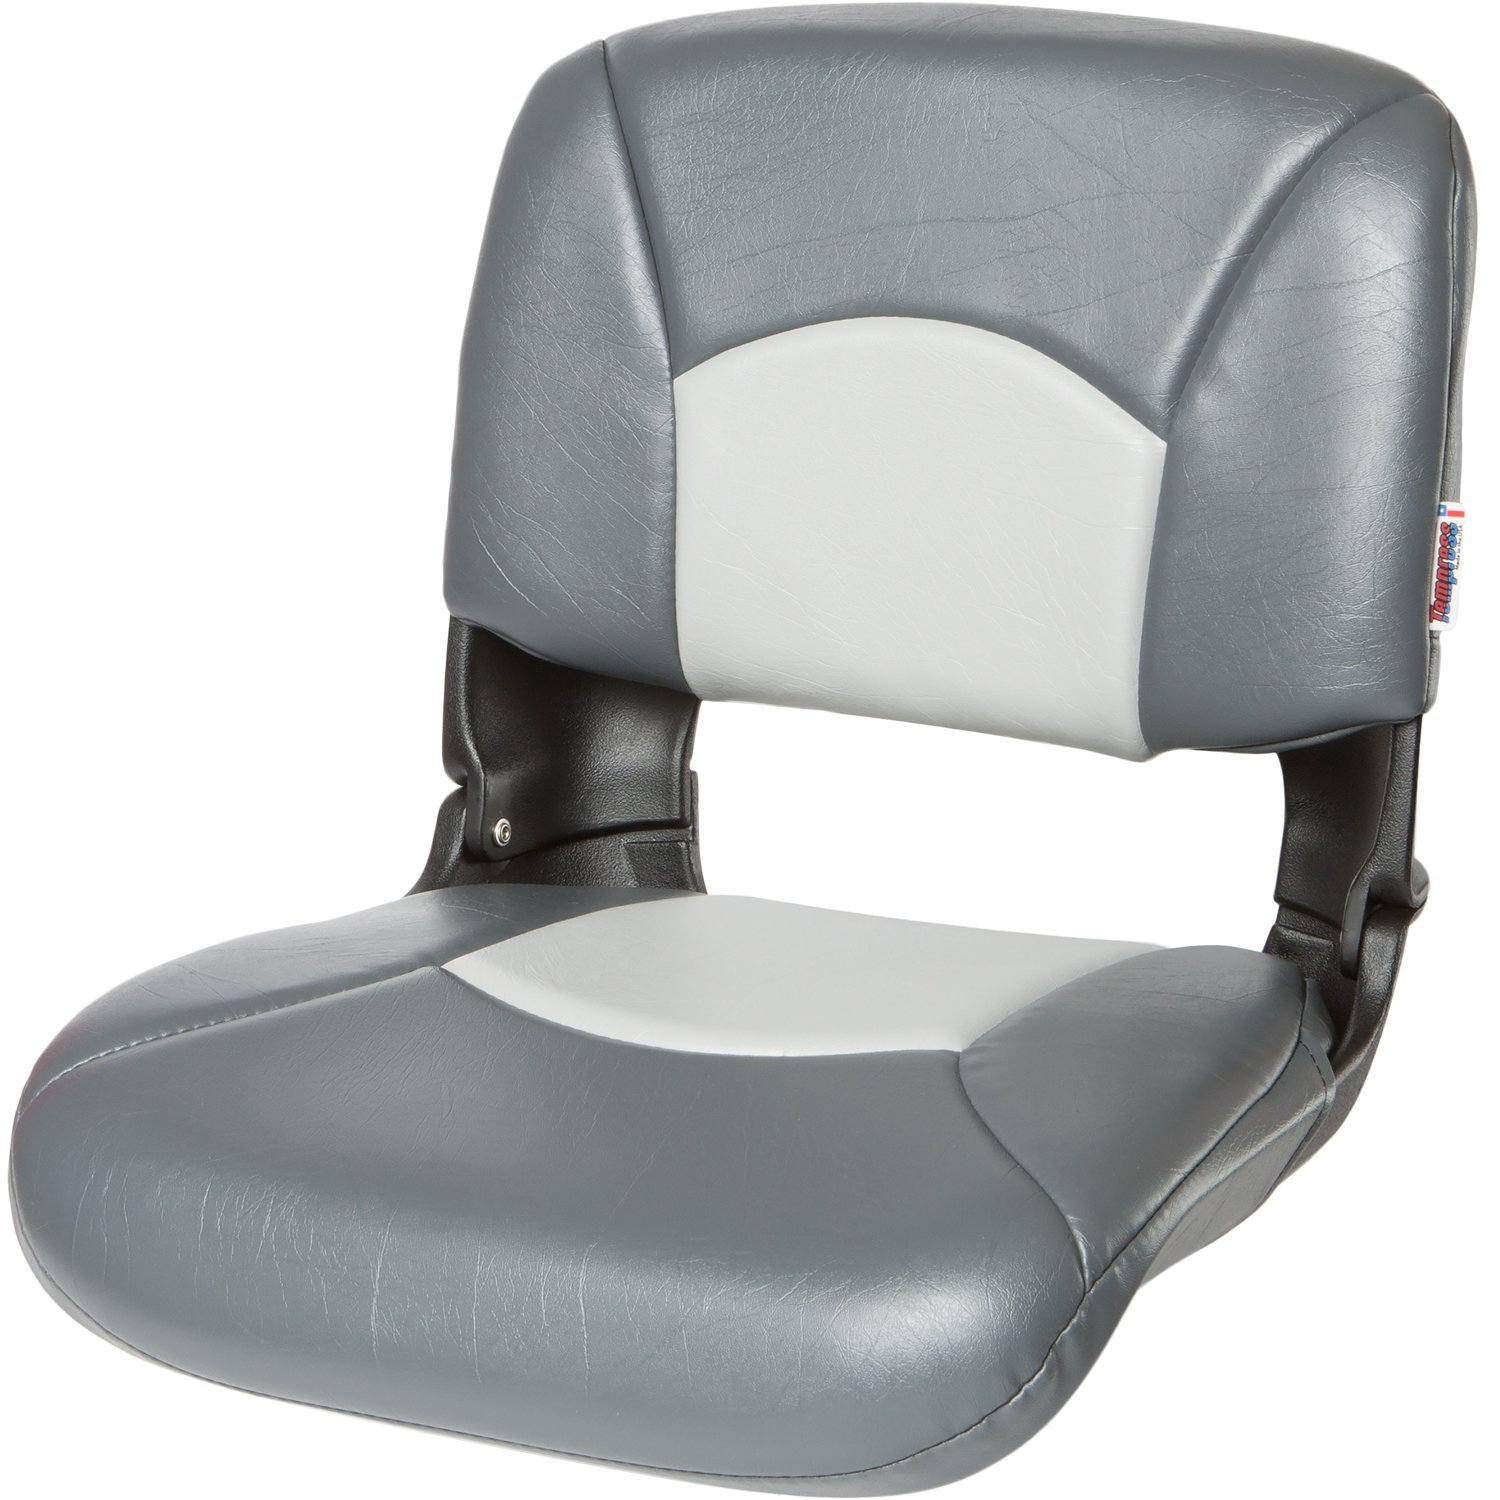 Tempress All-Weather™ High-Back Seat – Available In 6 Colors